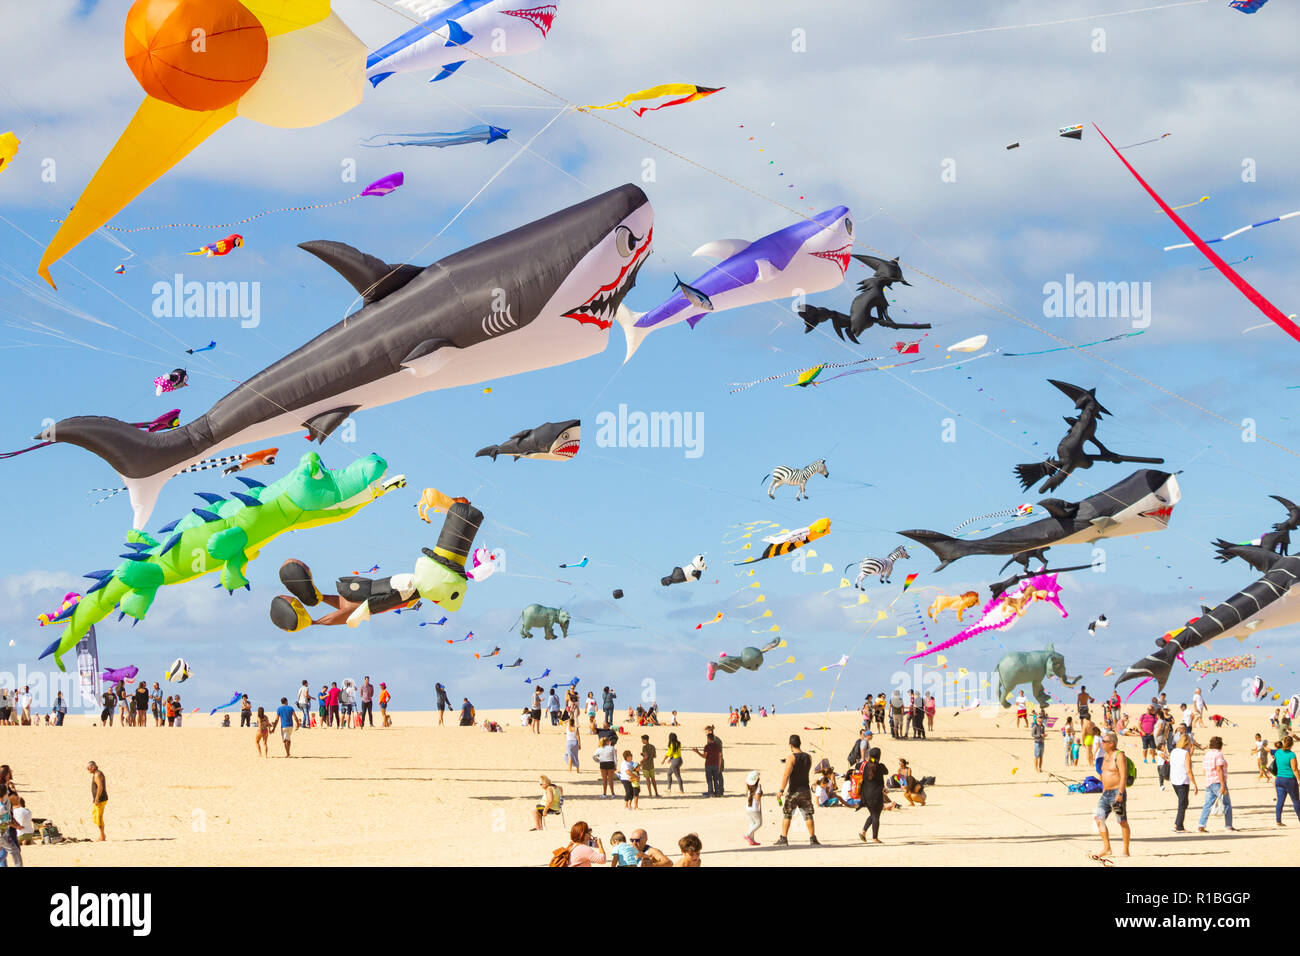 Fuerteventura, Canary Islands, Spain. 10th Nov, 2018. Hundreds of kites flying on El Burro beach dunes near Corralejo at the 2018 Internationa Kite festival on Fuerteventura in the Canary Islands. Credit: ALAN DAWSON/Alamy Live News - Stock Image